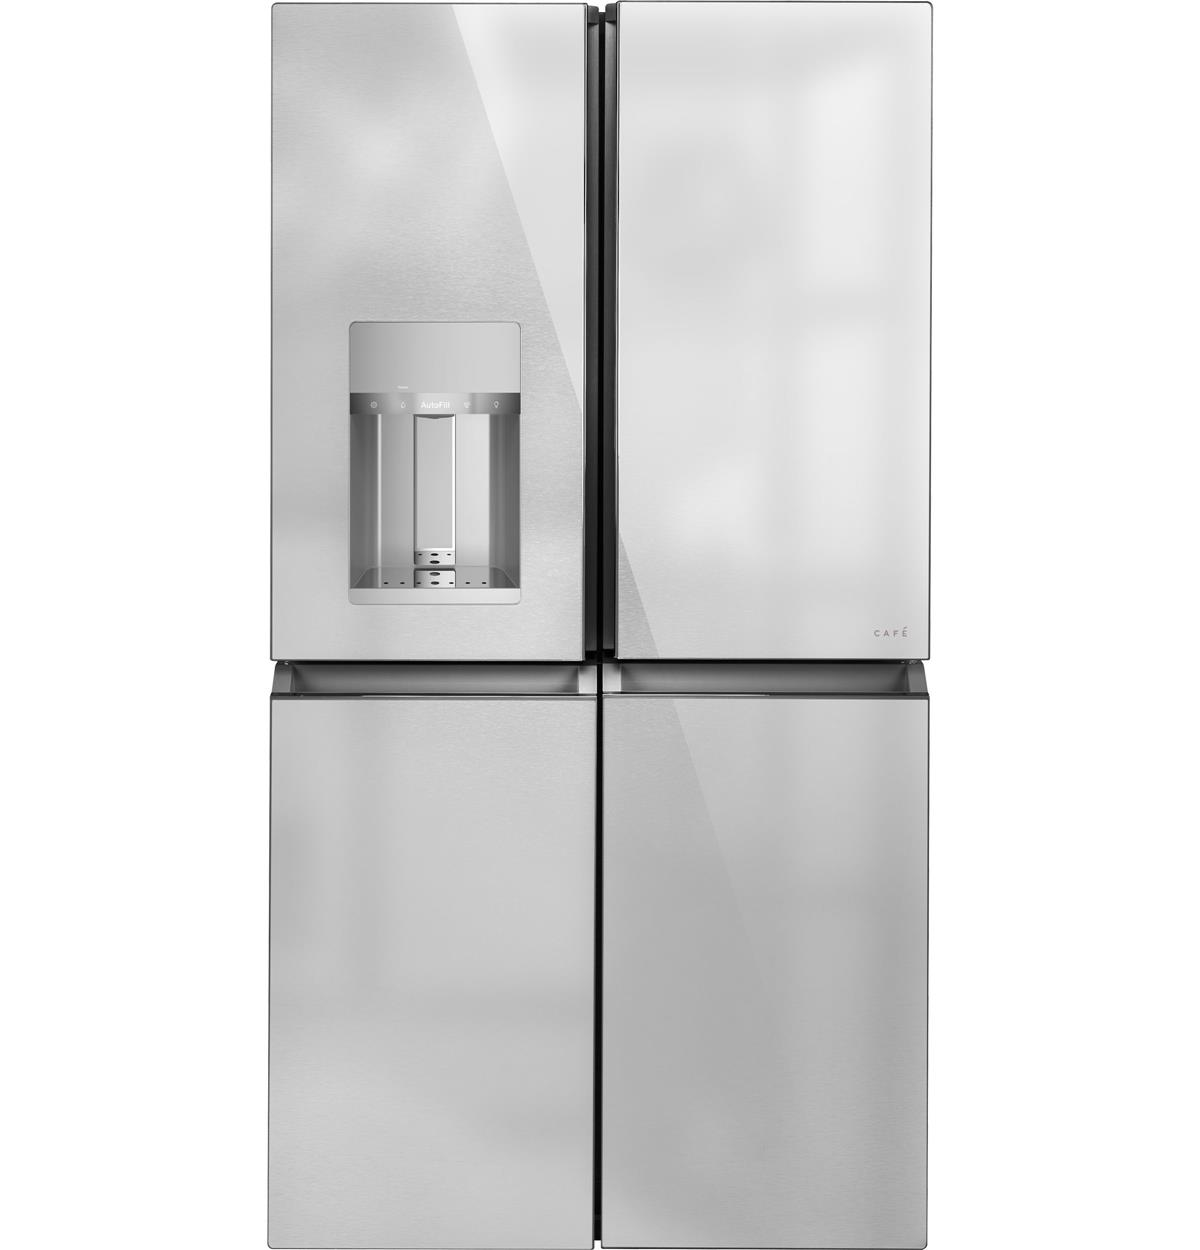 Café™ ENERGY STAR® 27.4 Cu. Ft. Smart Quad-Door Refrigerator in Platinum Glass